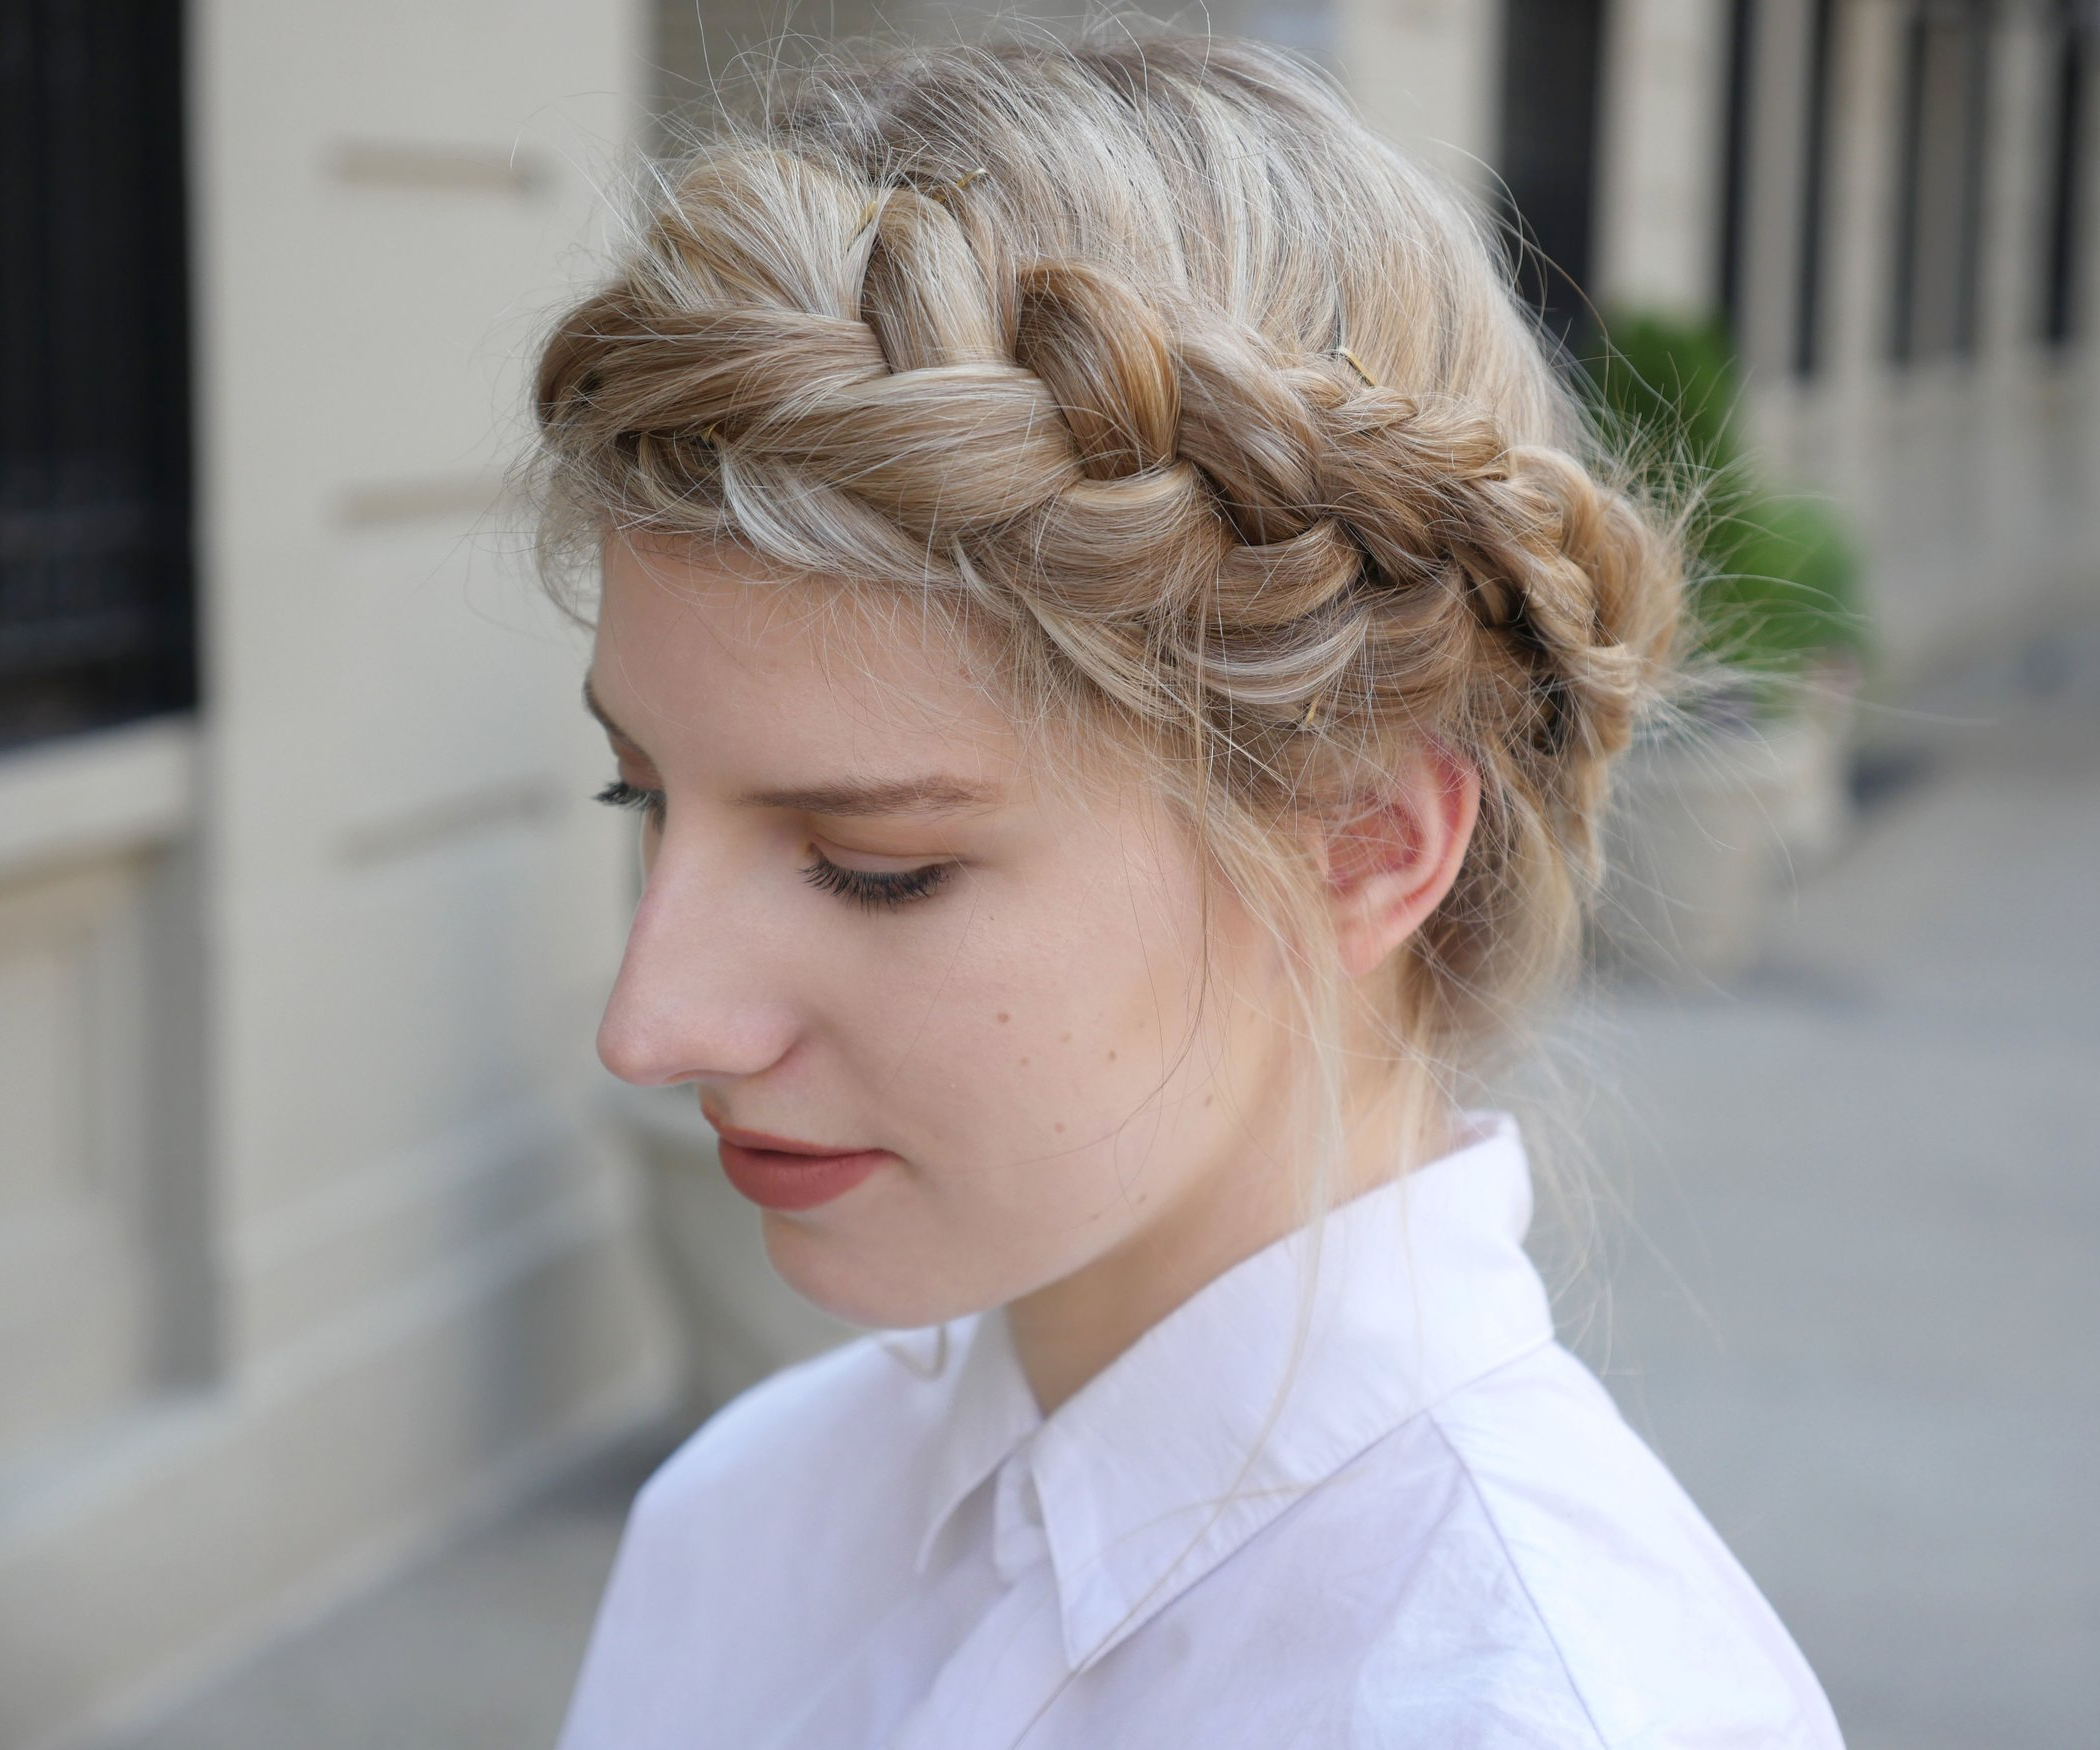 20 Royal And Charismatic Crown Braid Hairstyles – Haircuts For Most Recently Released Jewelled Basket Weave Prom Updos (View 8 of 20)